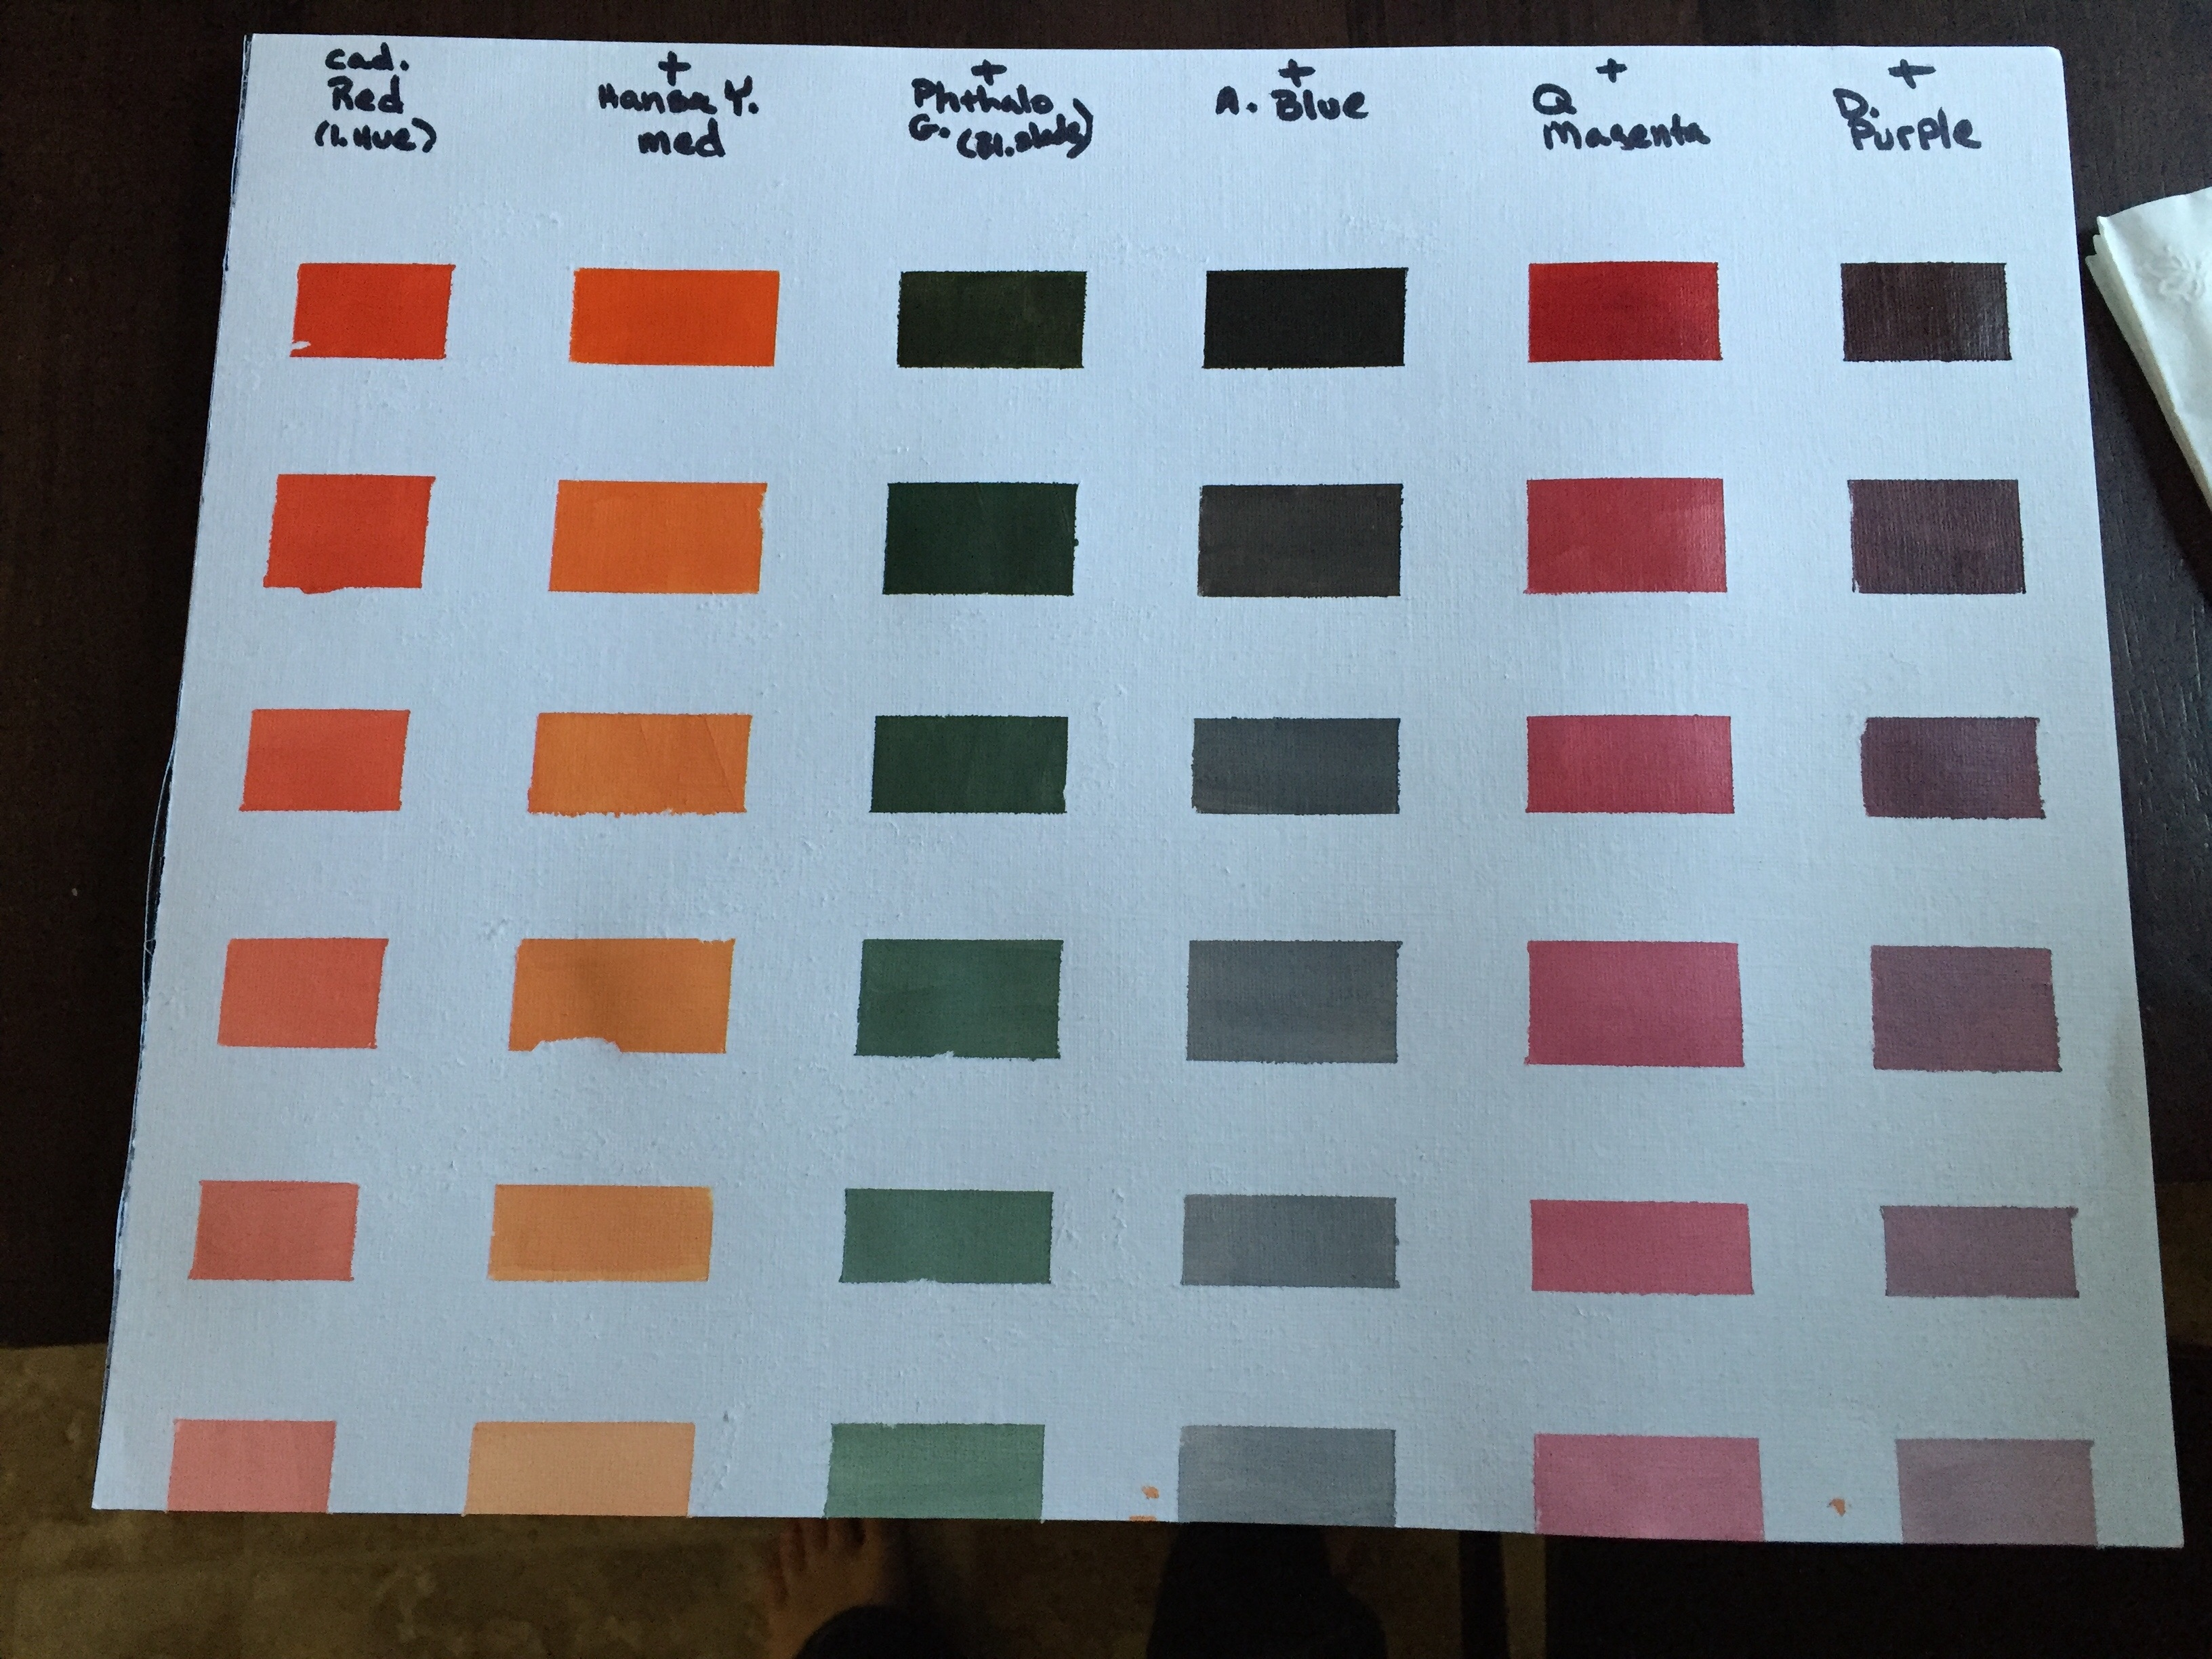 My first color chart draw mix paint forum imageeg 16m geenschuldenfo Image collections